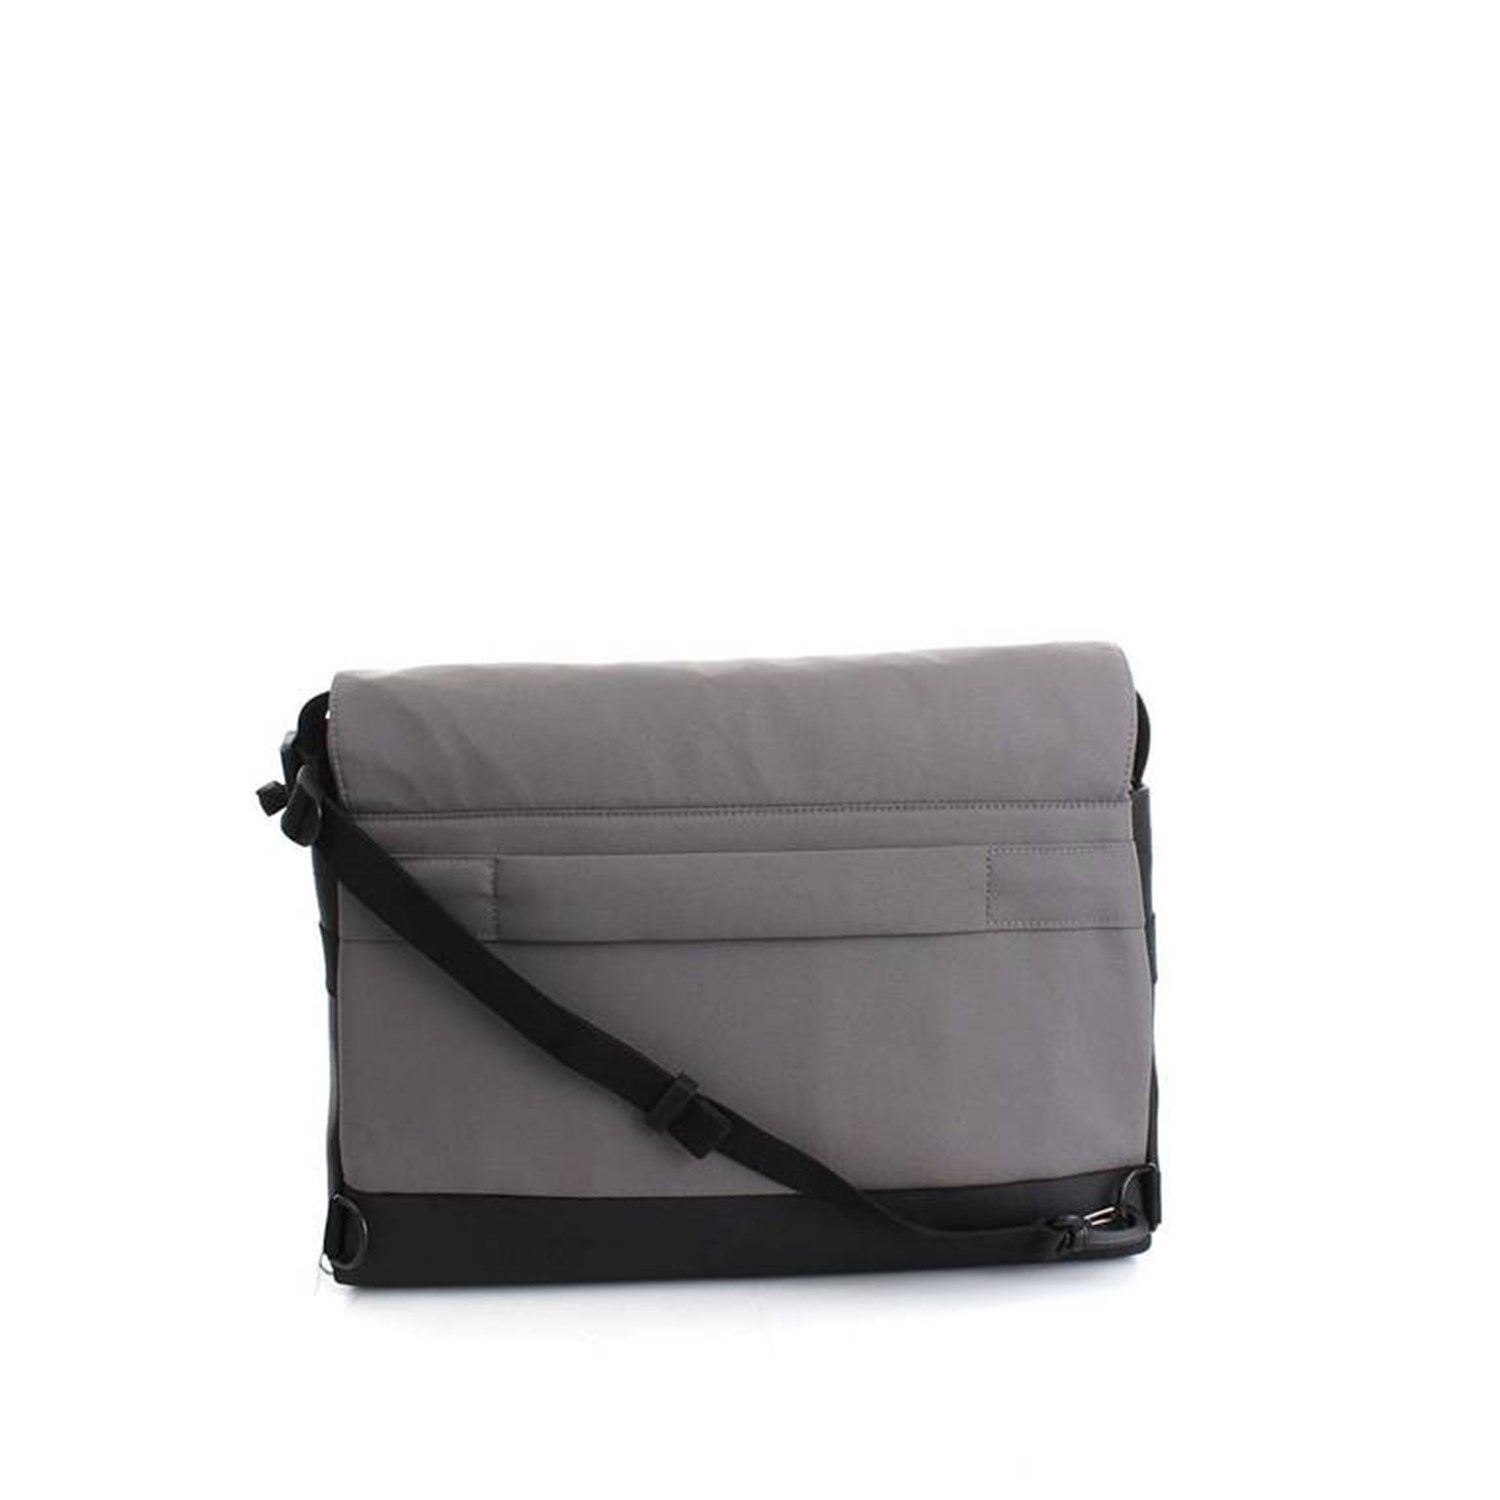 Moleskine Bags Accessories To work GREY 2854917